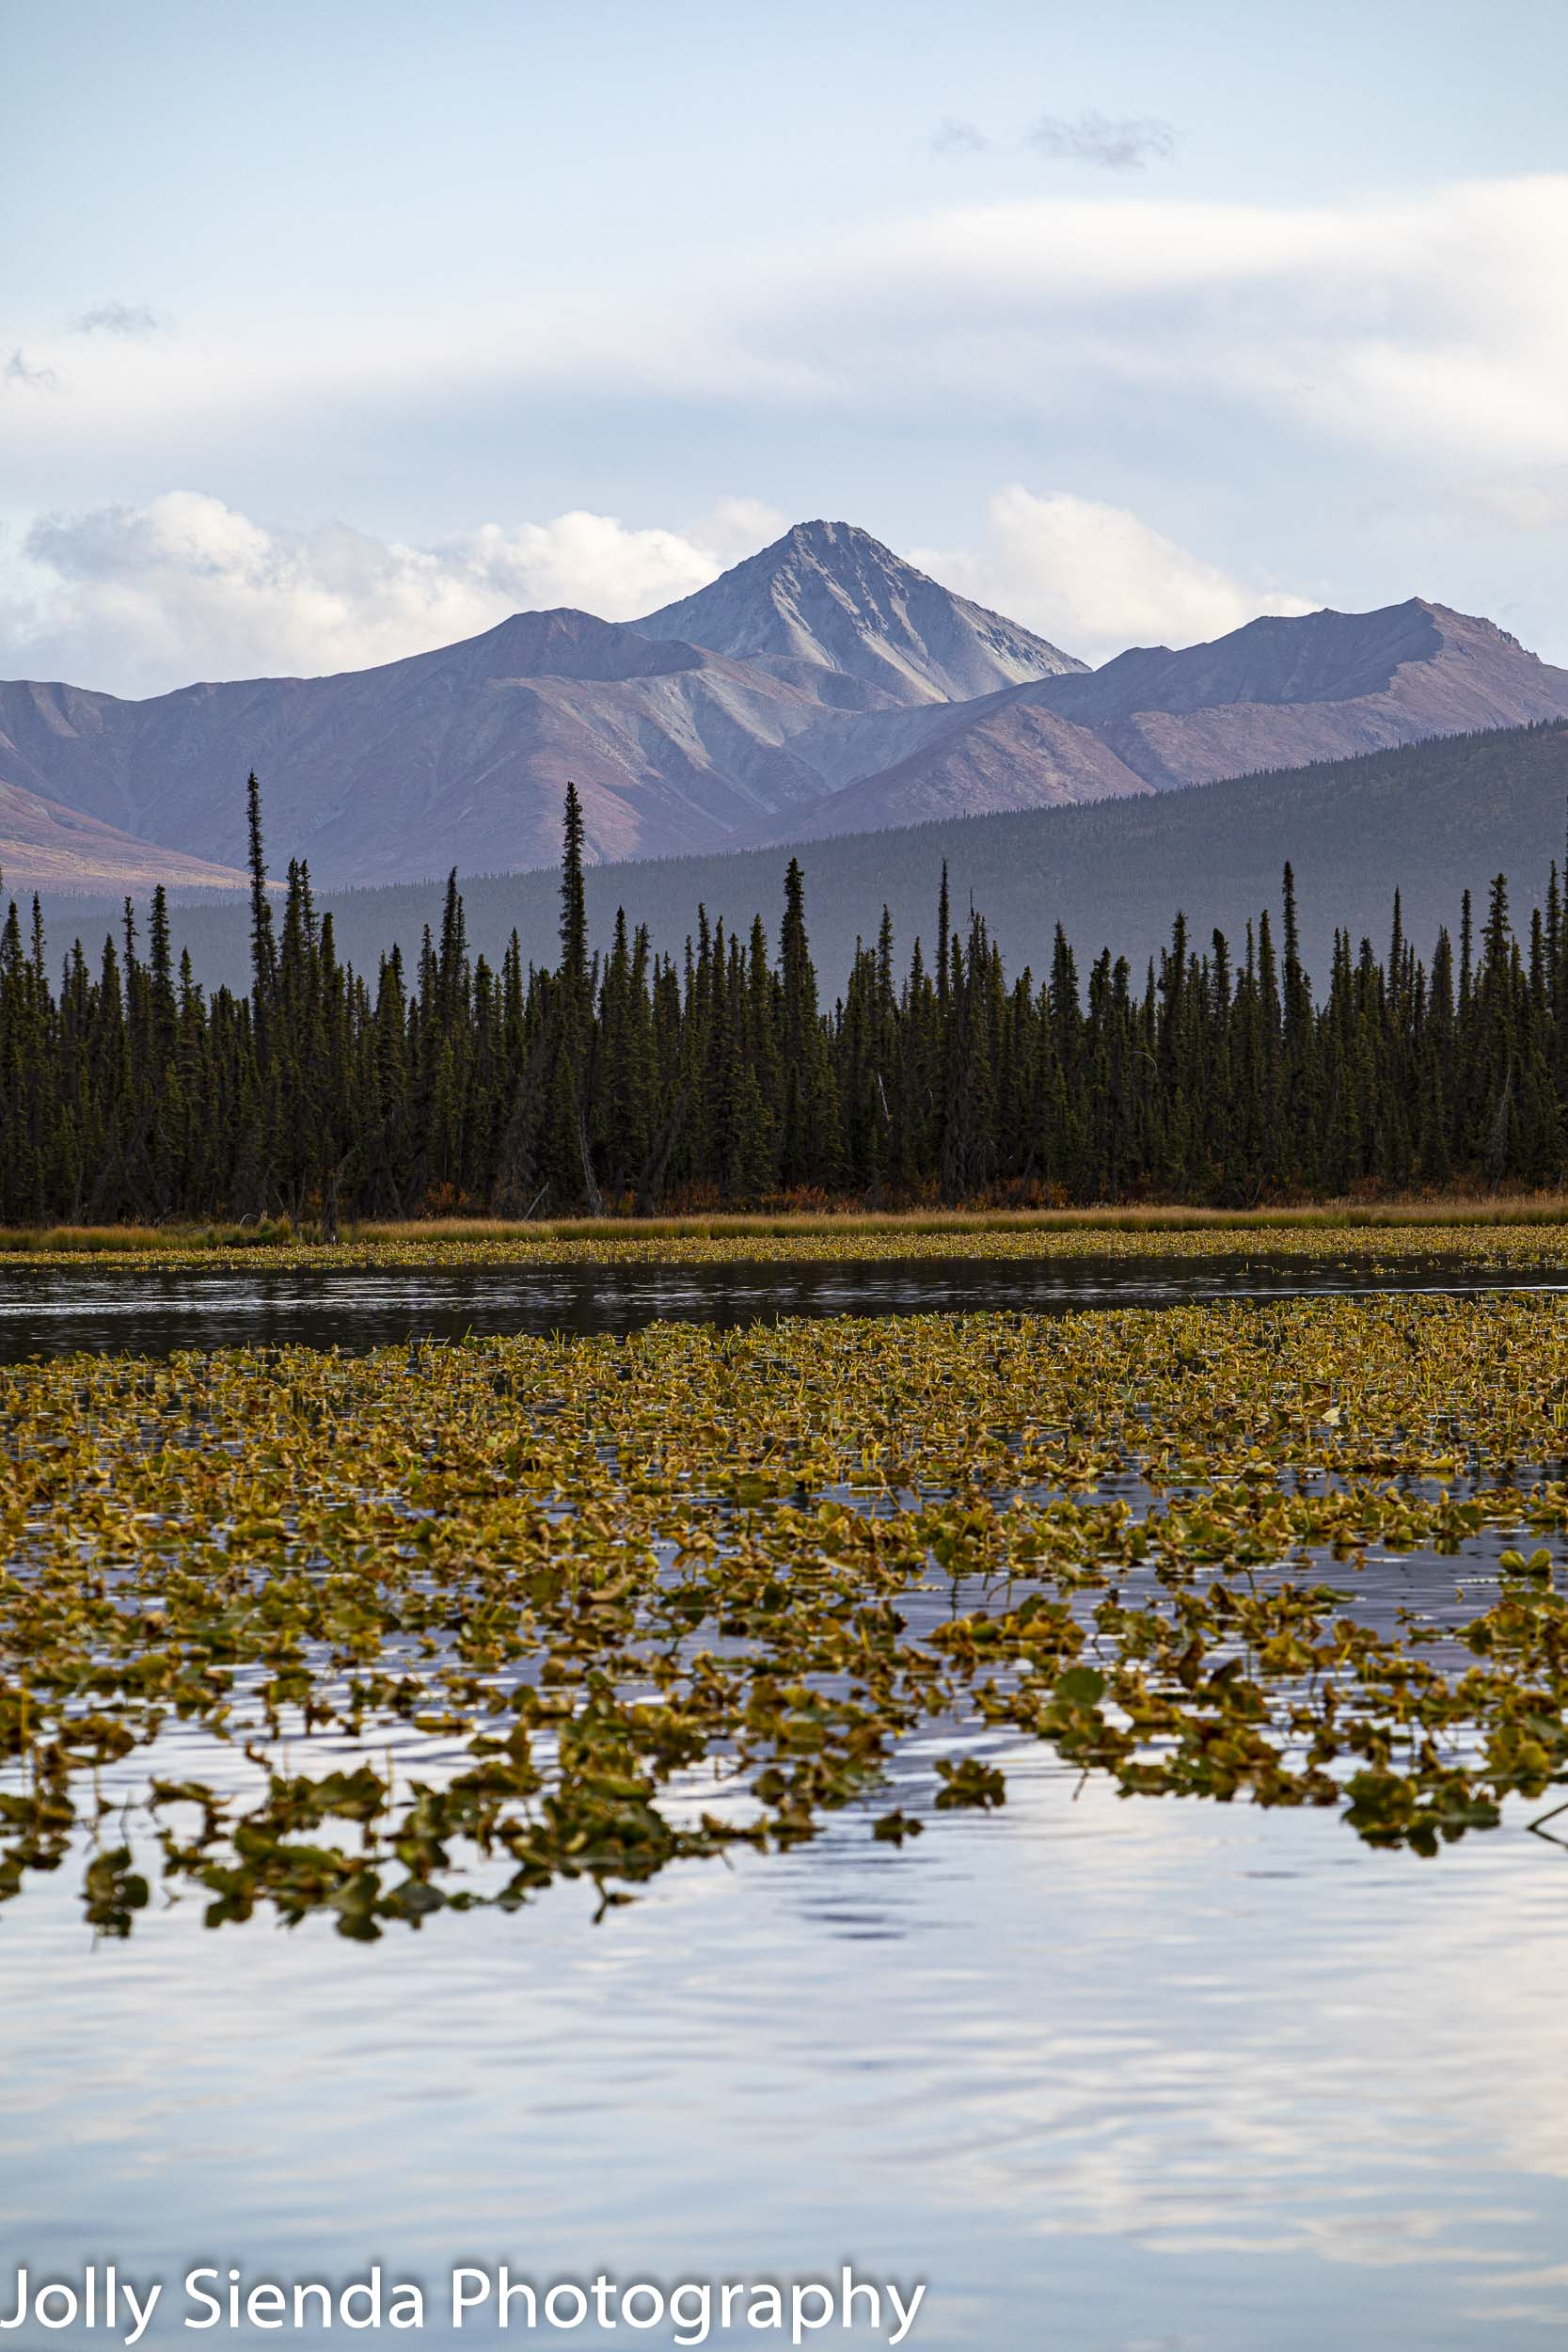 Wrangell Mountains, forest, and a autumn lily pond